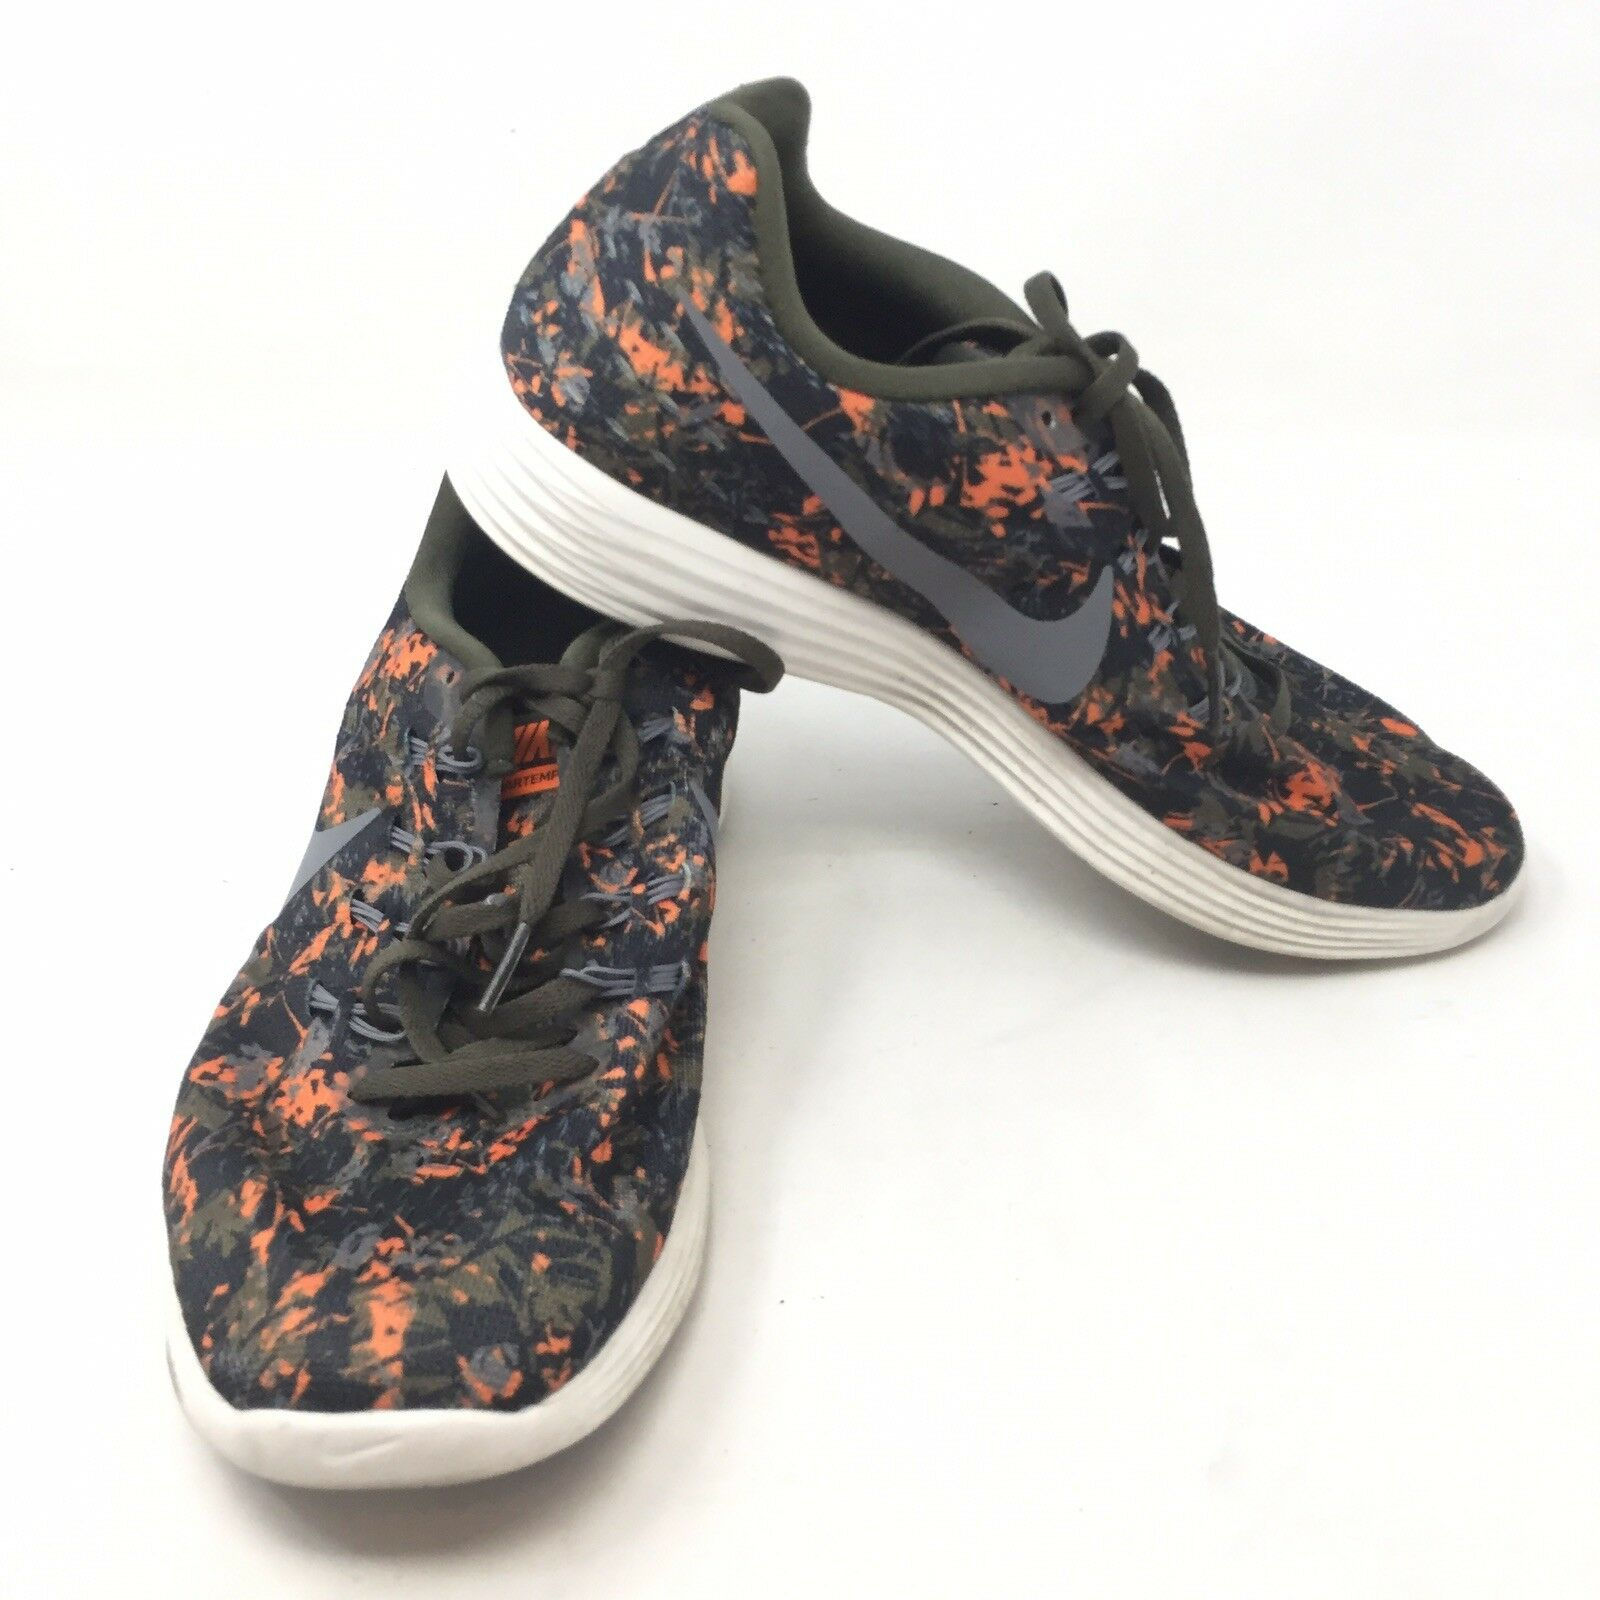 NIKE LunarTempo 2 Floral 831418-300 shoes sz 10 orange Green Lunar Sneakers K7B